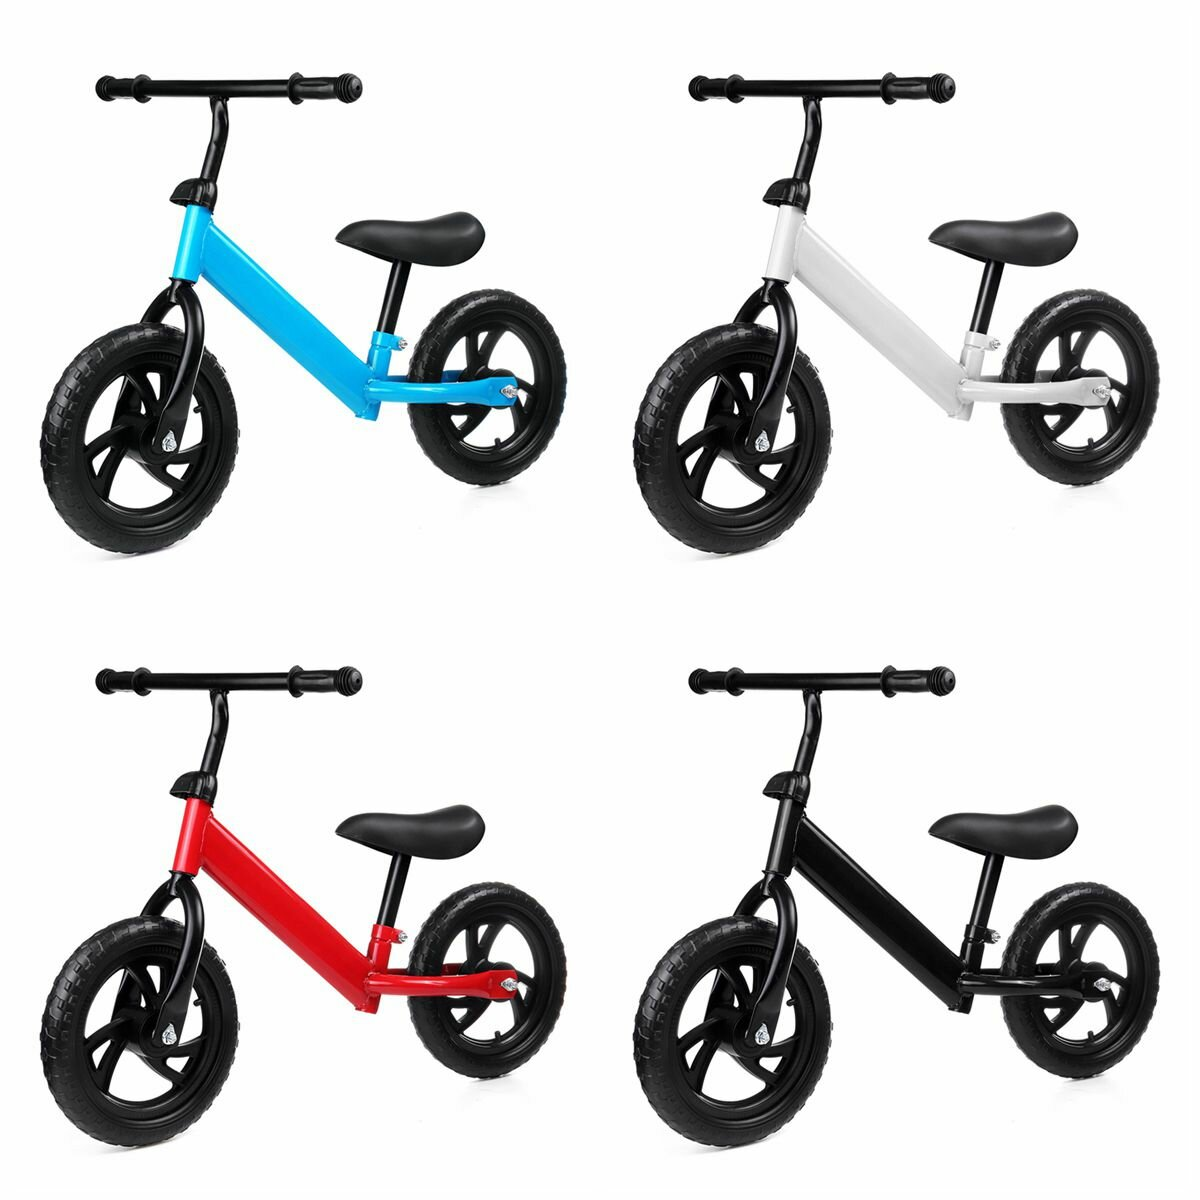 12 Inch Kids Best No Pedal Adjustable Balance Bike for Aged 1-7 Children Toddler Bicycle with non-slip solid wheels&360°